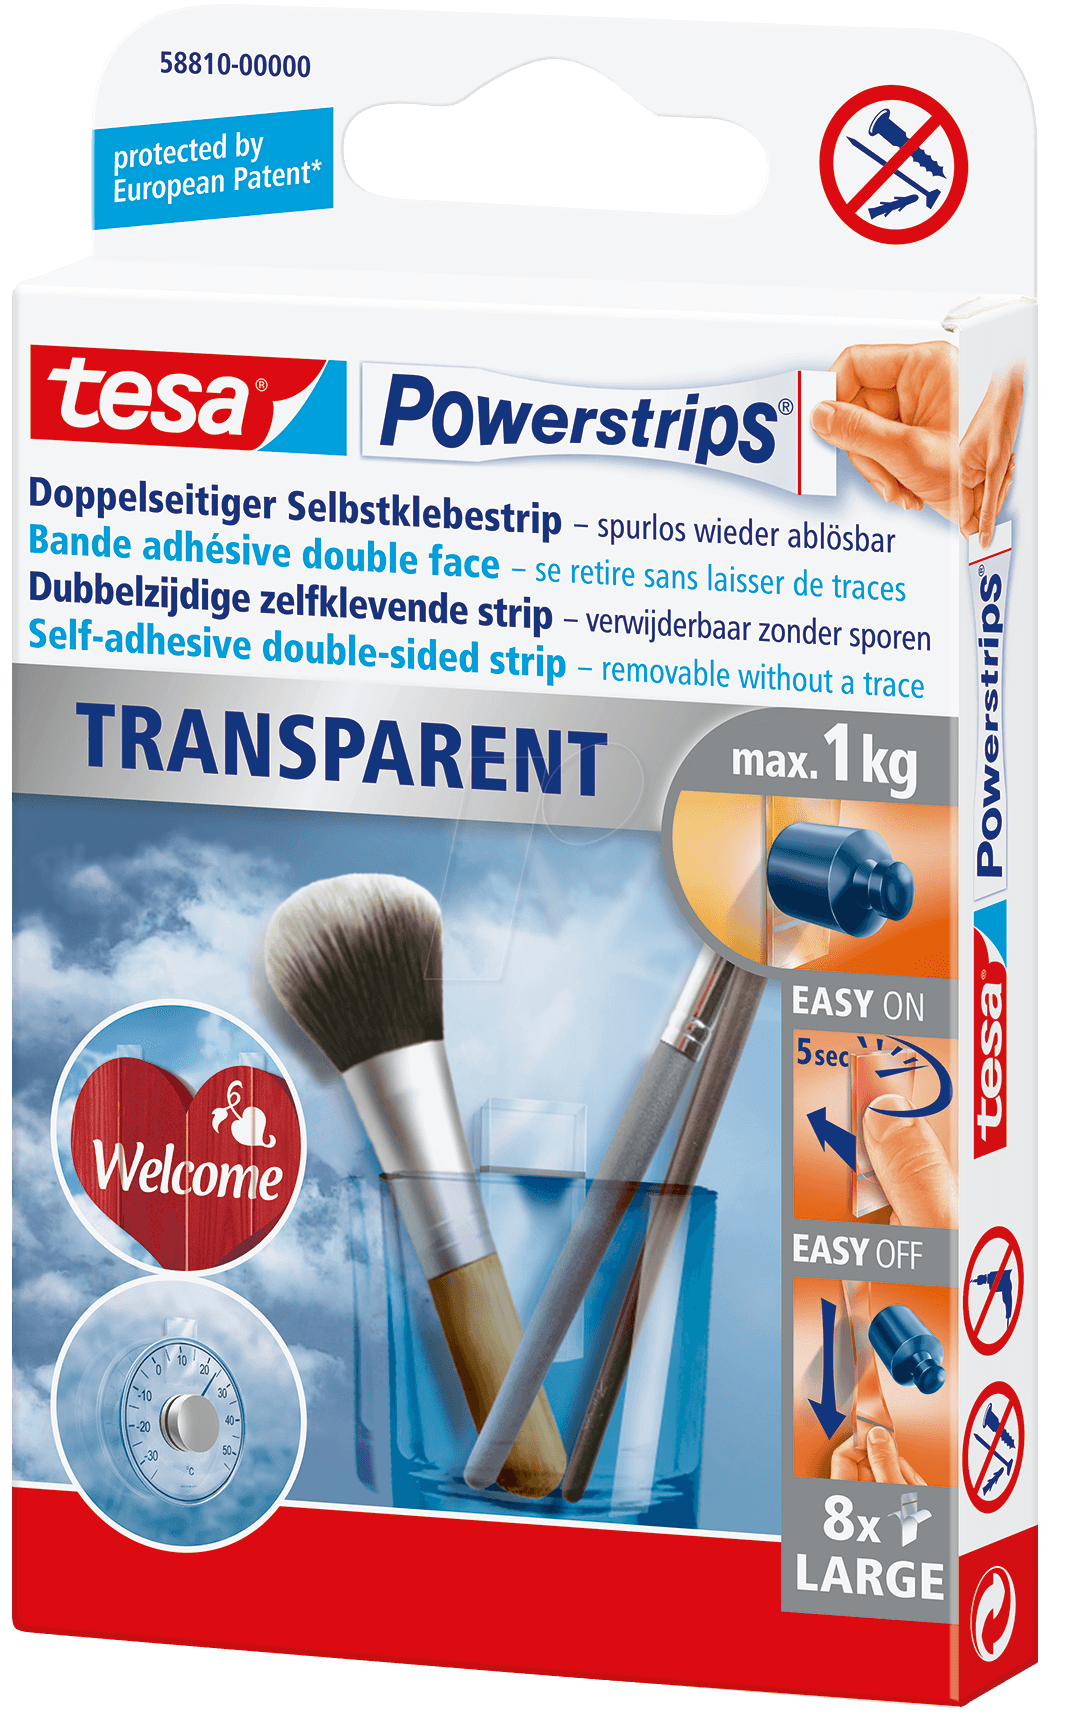 TESA 58810 - tesa Powerstrips® transparent Strips Large von Tesa